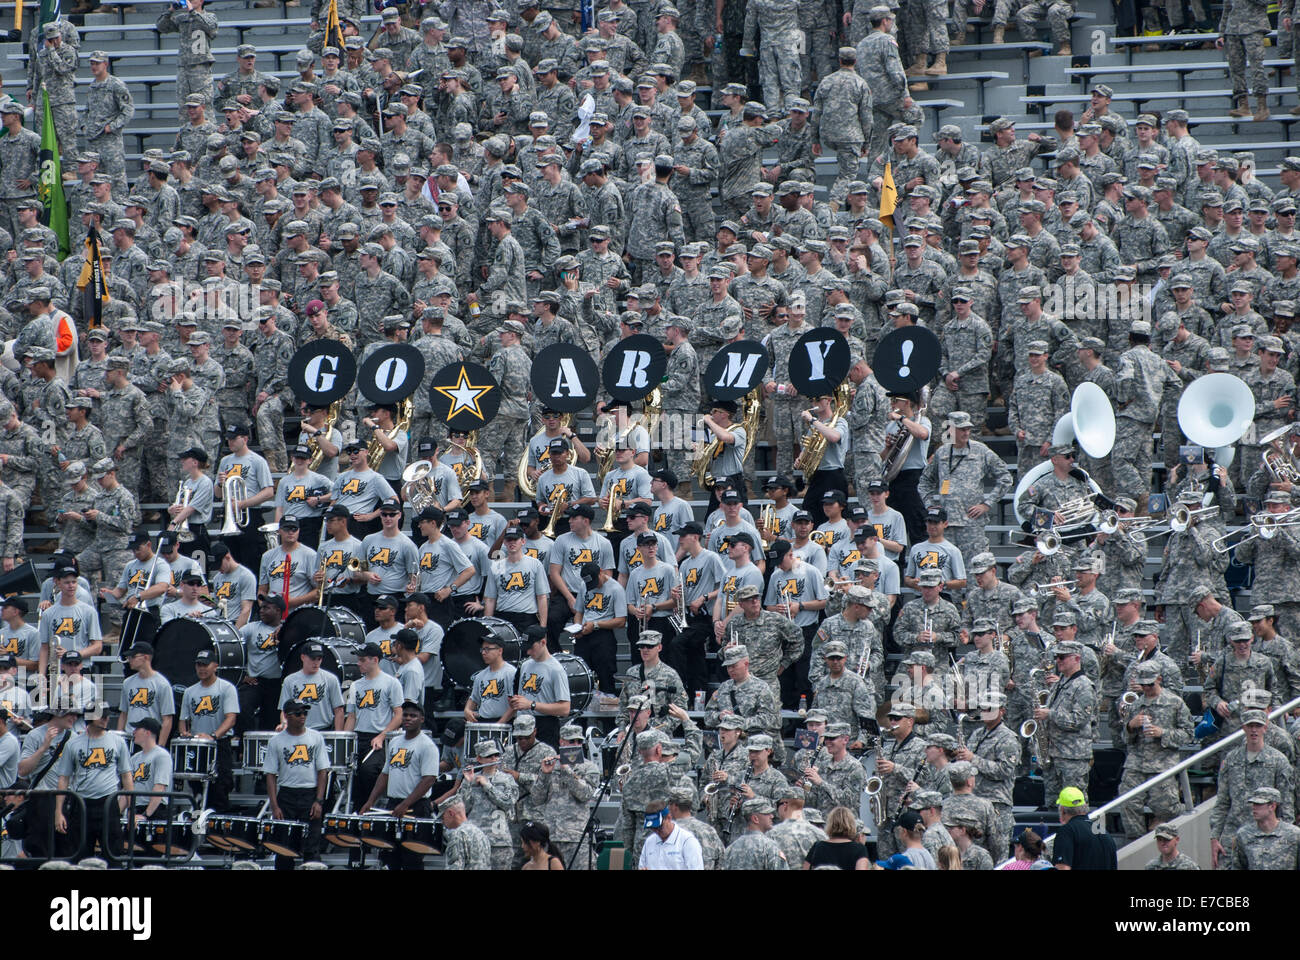 A United States Military Academy football game played at Mitchie Stadium at West Point, NY - Stock Image